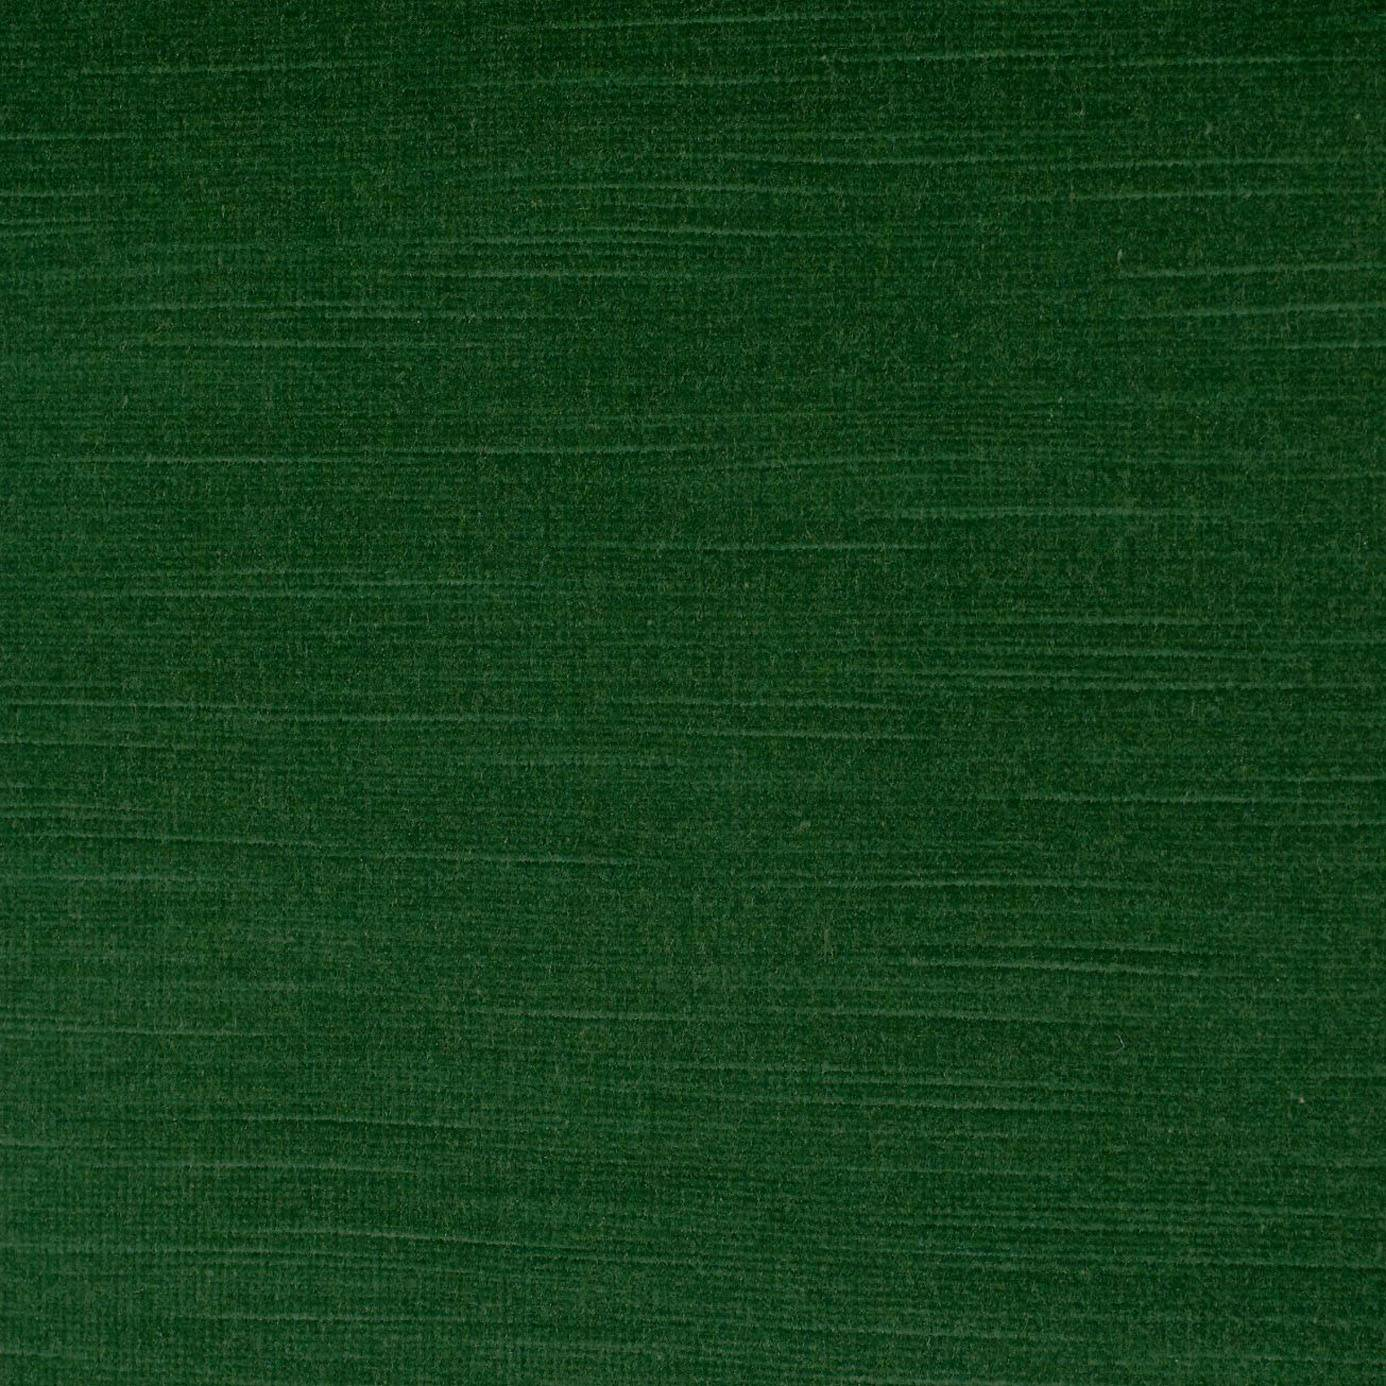 Brianza fabric forest green dbrzbr306 sanderson for Green fabric